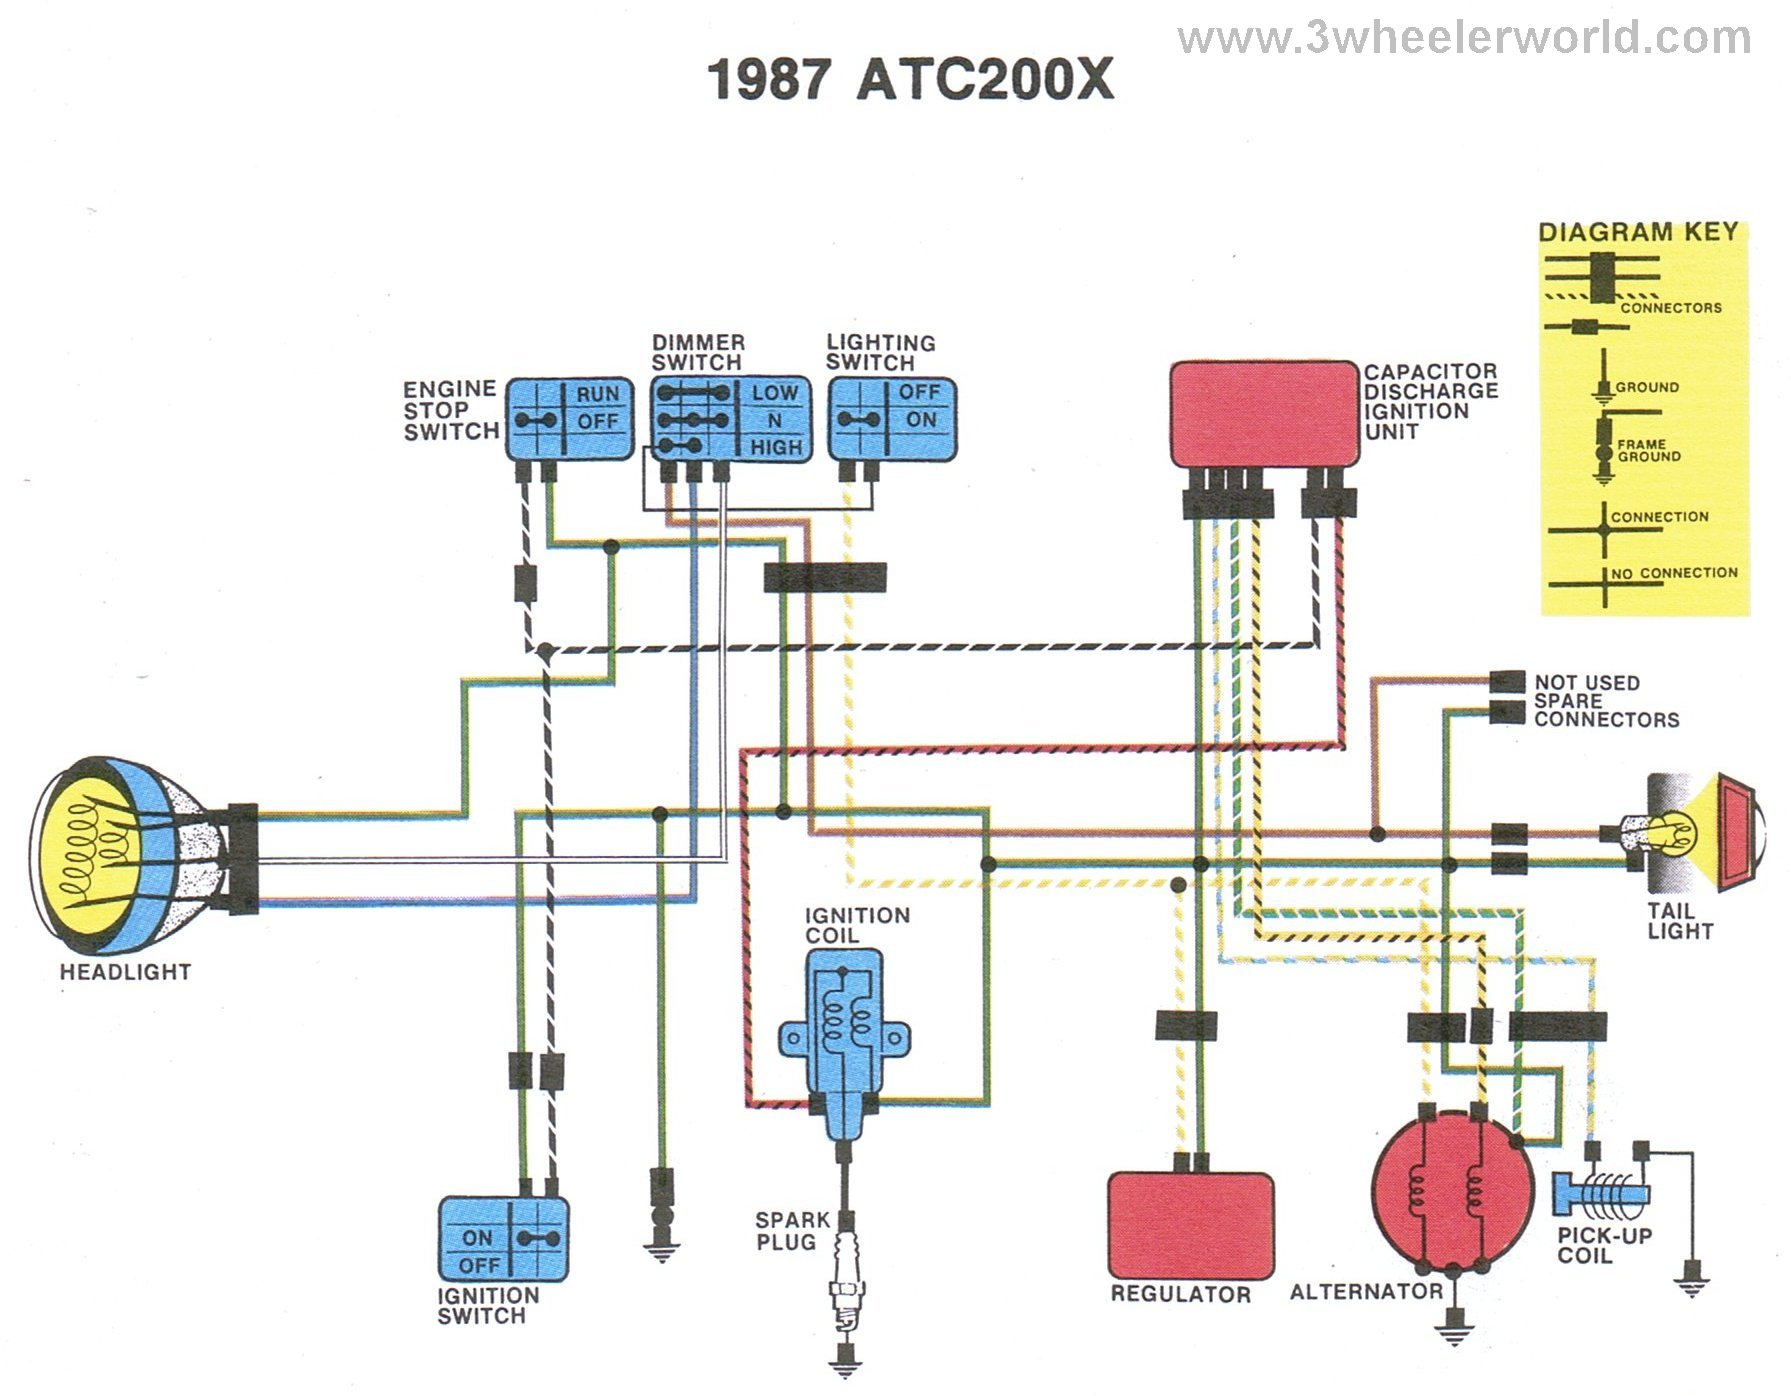 wiring diagram for 1984 honda trx200 manual e books 1990 Honda 300 Wiring Diagram 1982 honda trx 200 wiring diagram wiring diagram blog data1982 honda trx 200 wiring diagram wiring